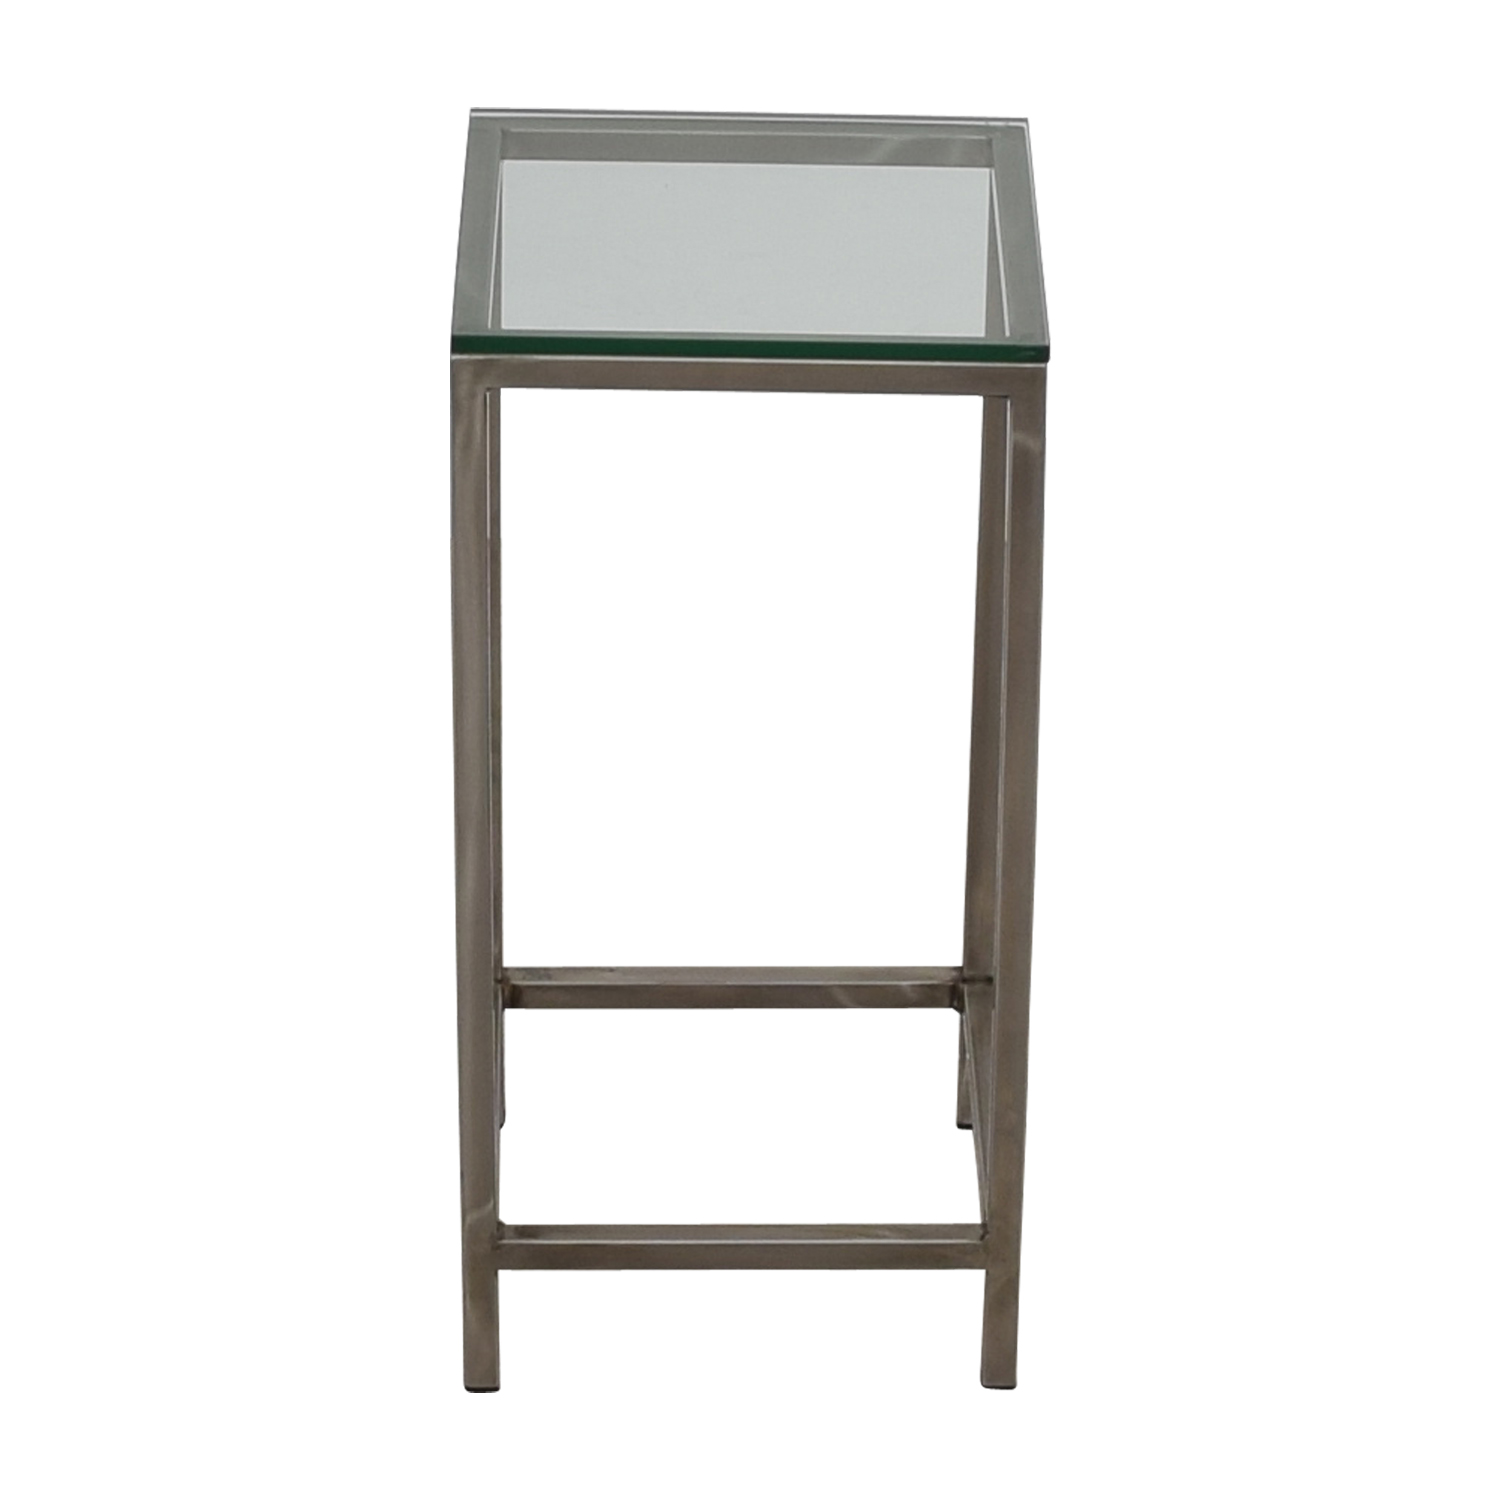 Crate & Barrel Crate & Barrel Era Square Glass Top Side Table for sale